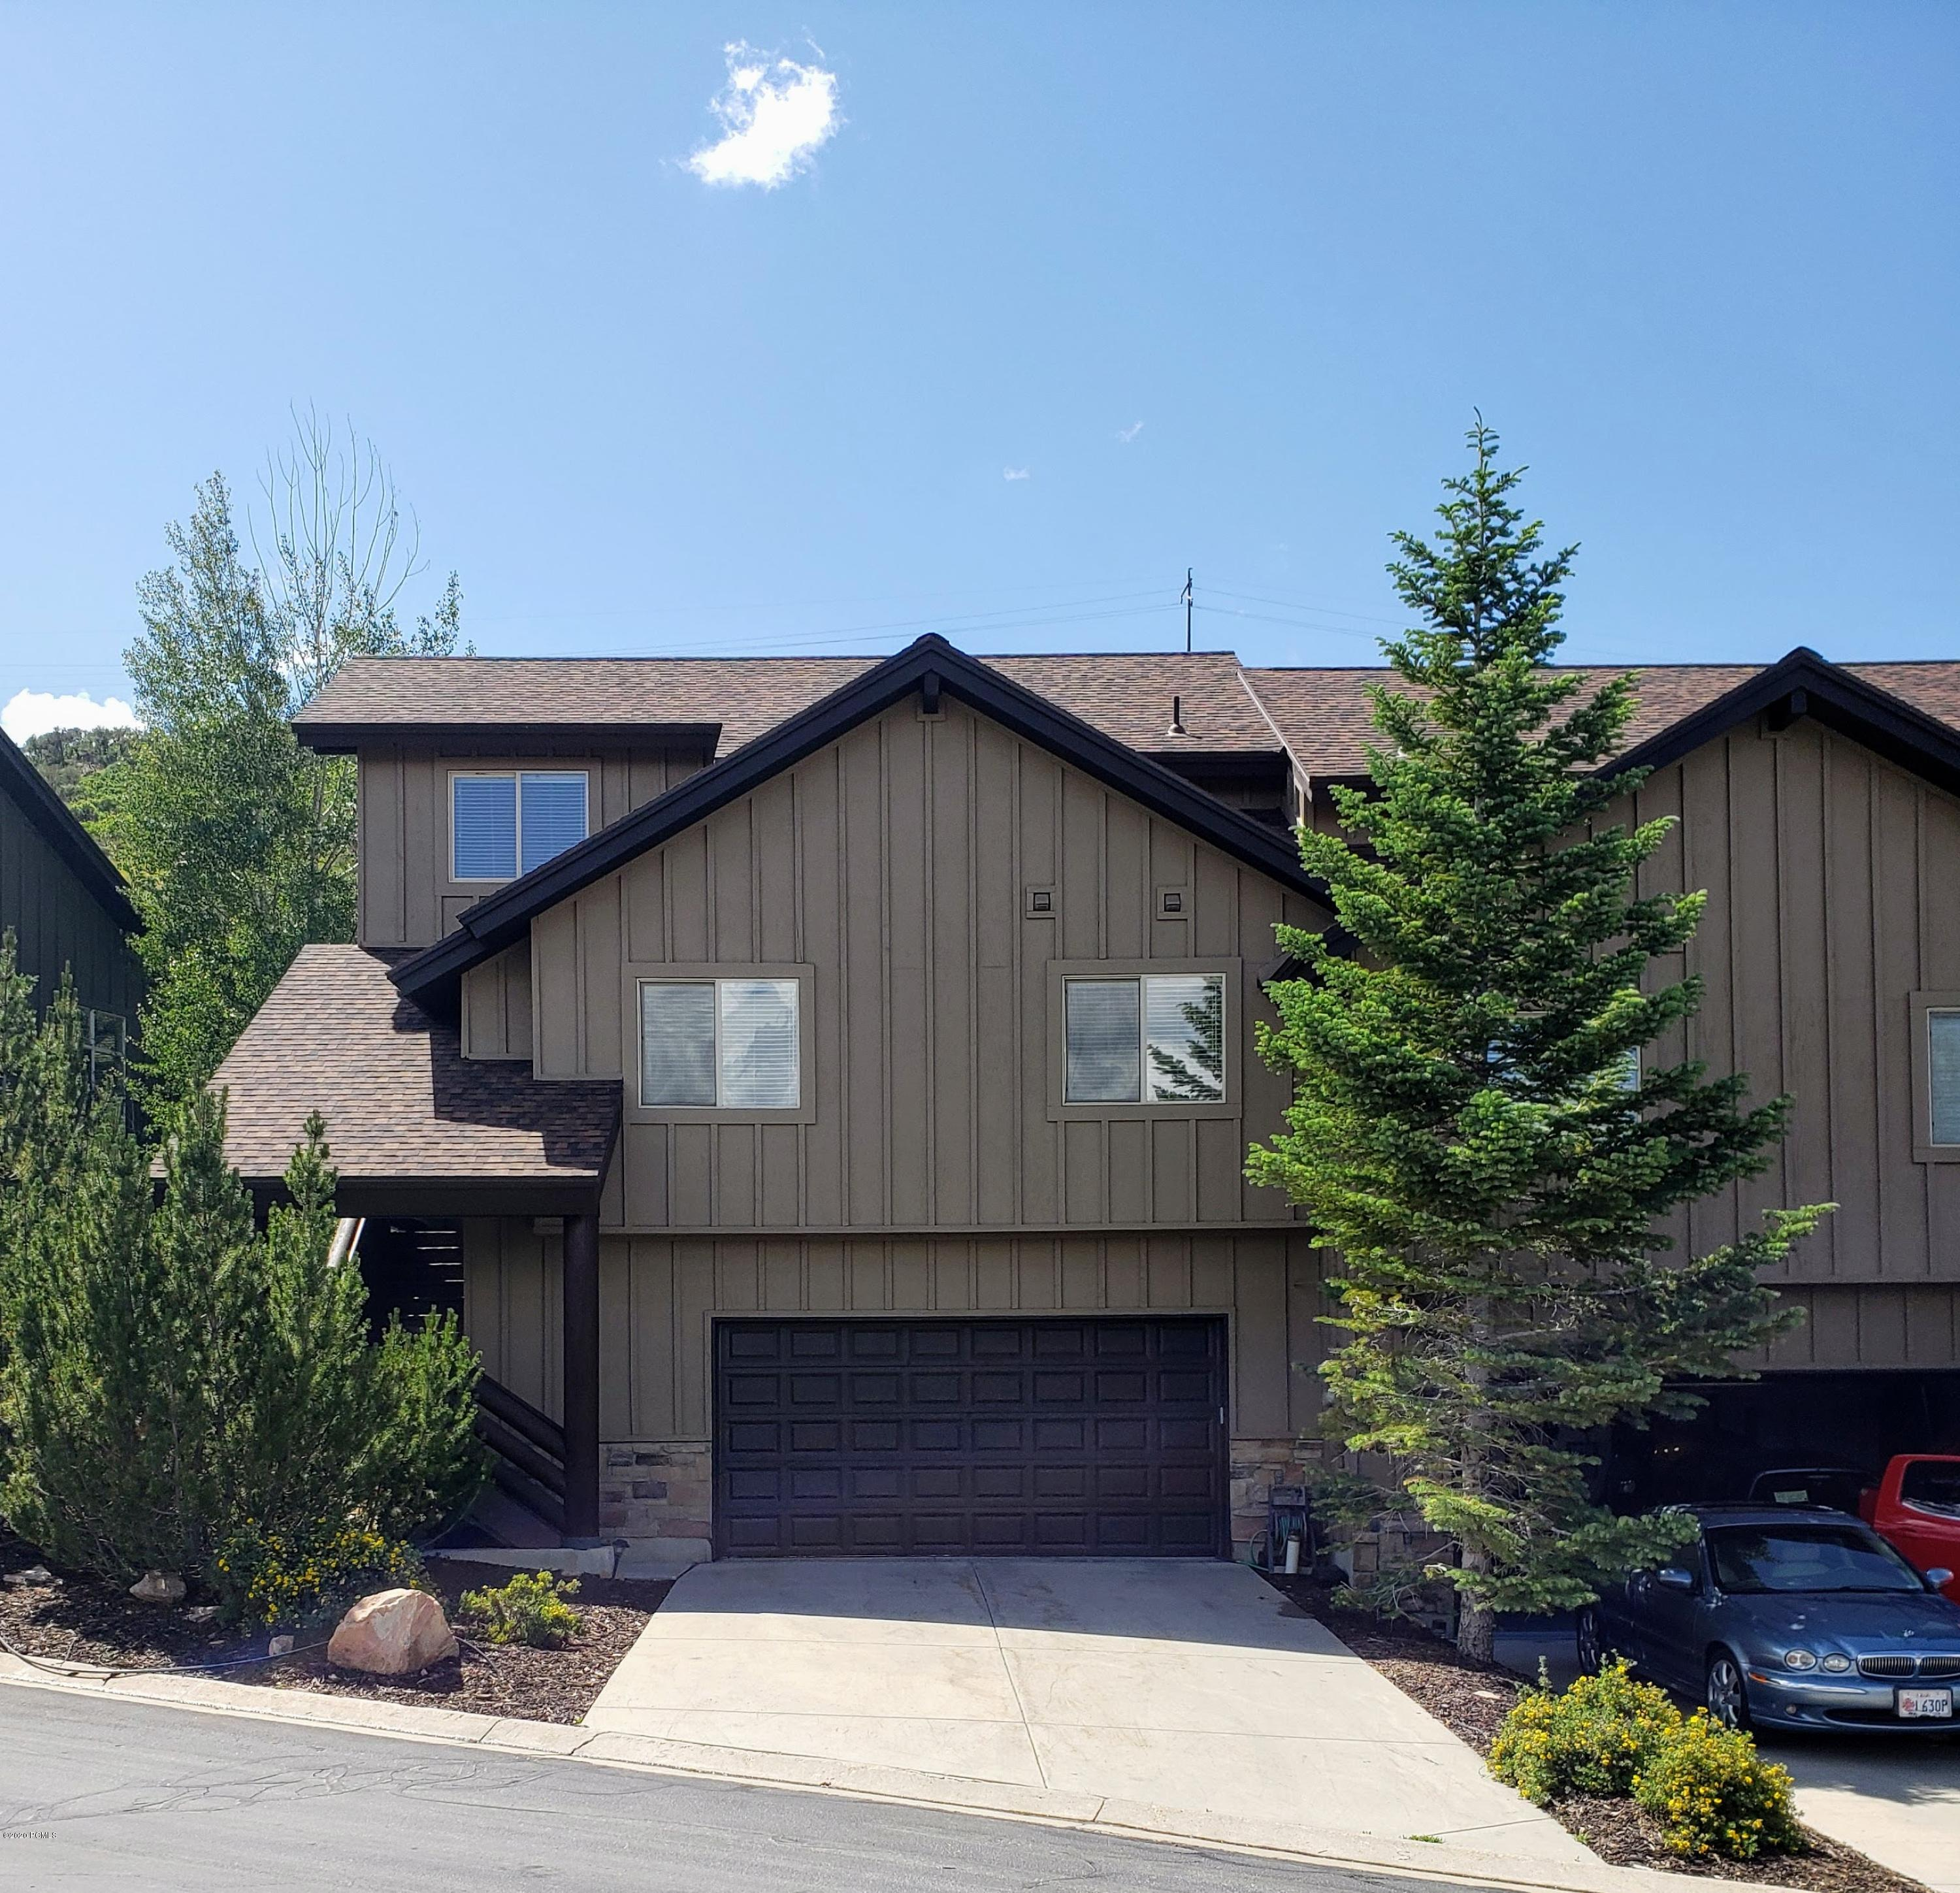 5254 Cove Canyon Drive, Park City, Utah 84098, 3 Bedrooms Bedrooms, ,3 BathroomsBathrooms,Condominium,For Sale,Cove Canyon,12002198